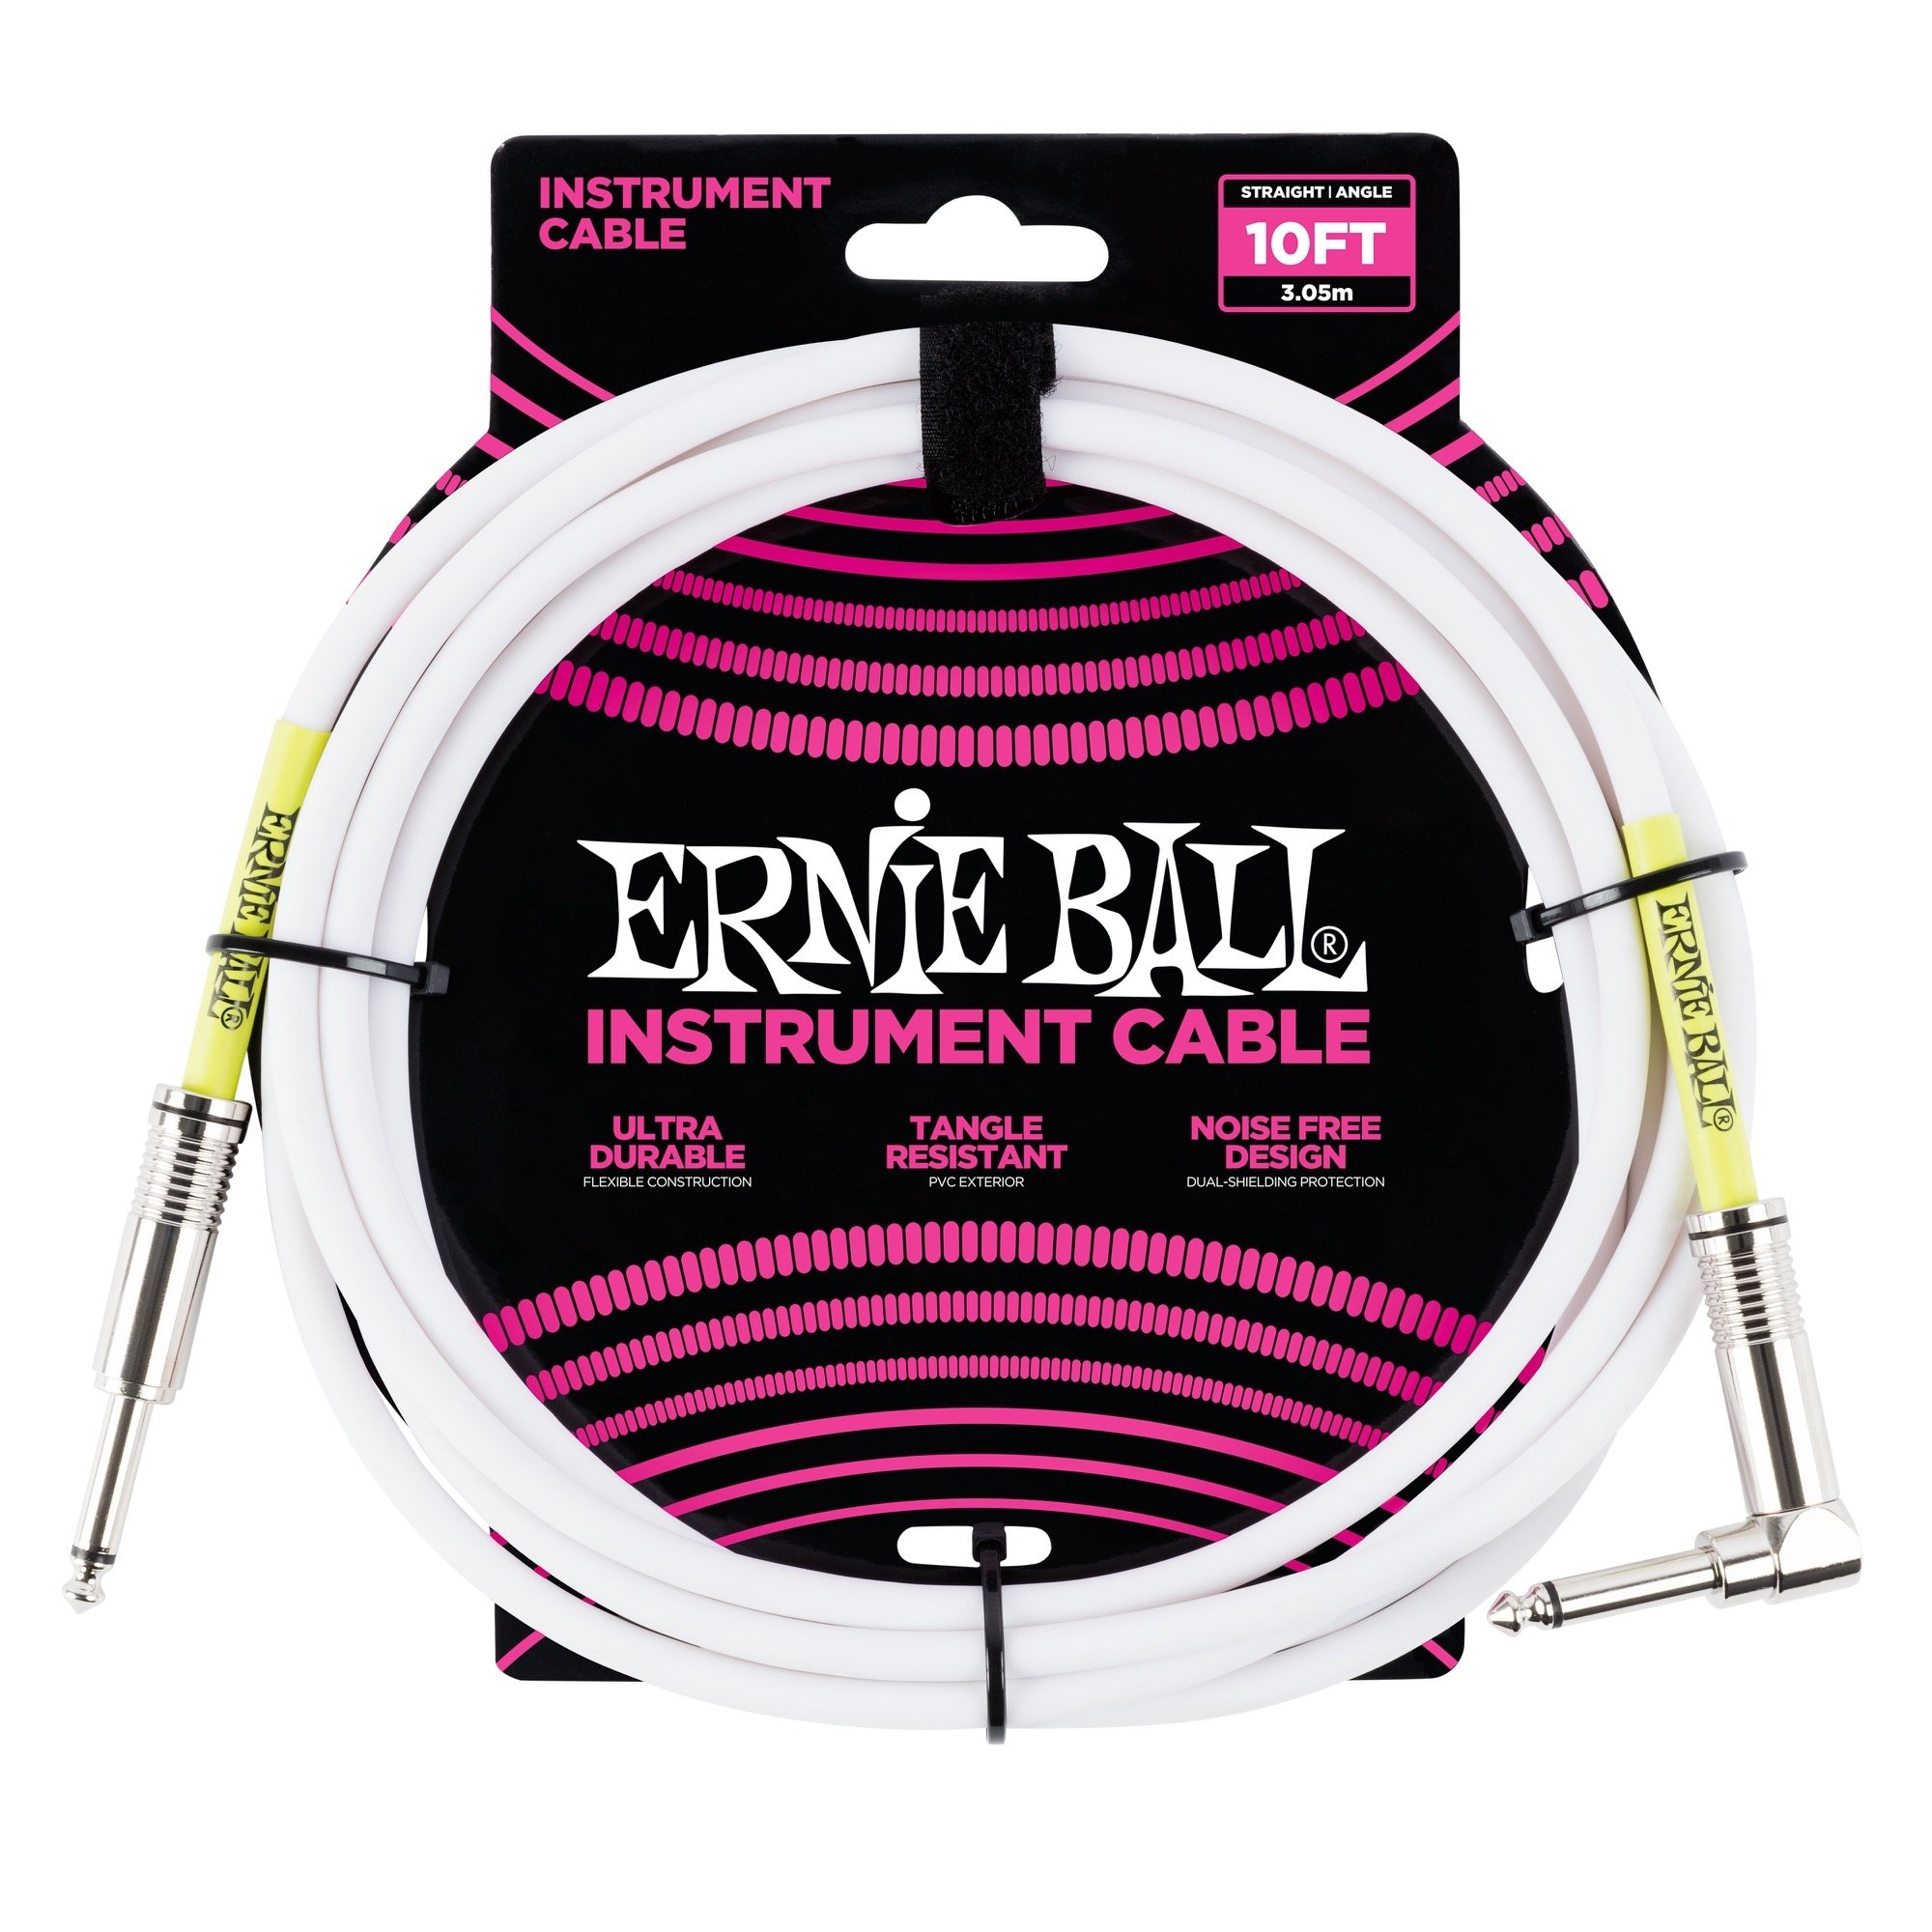 Ernie Ball 10' Straight / Angle Instrument Cable - White